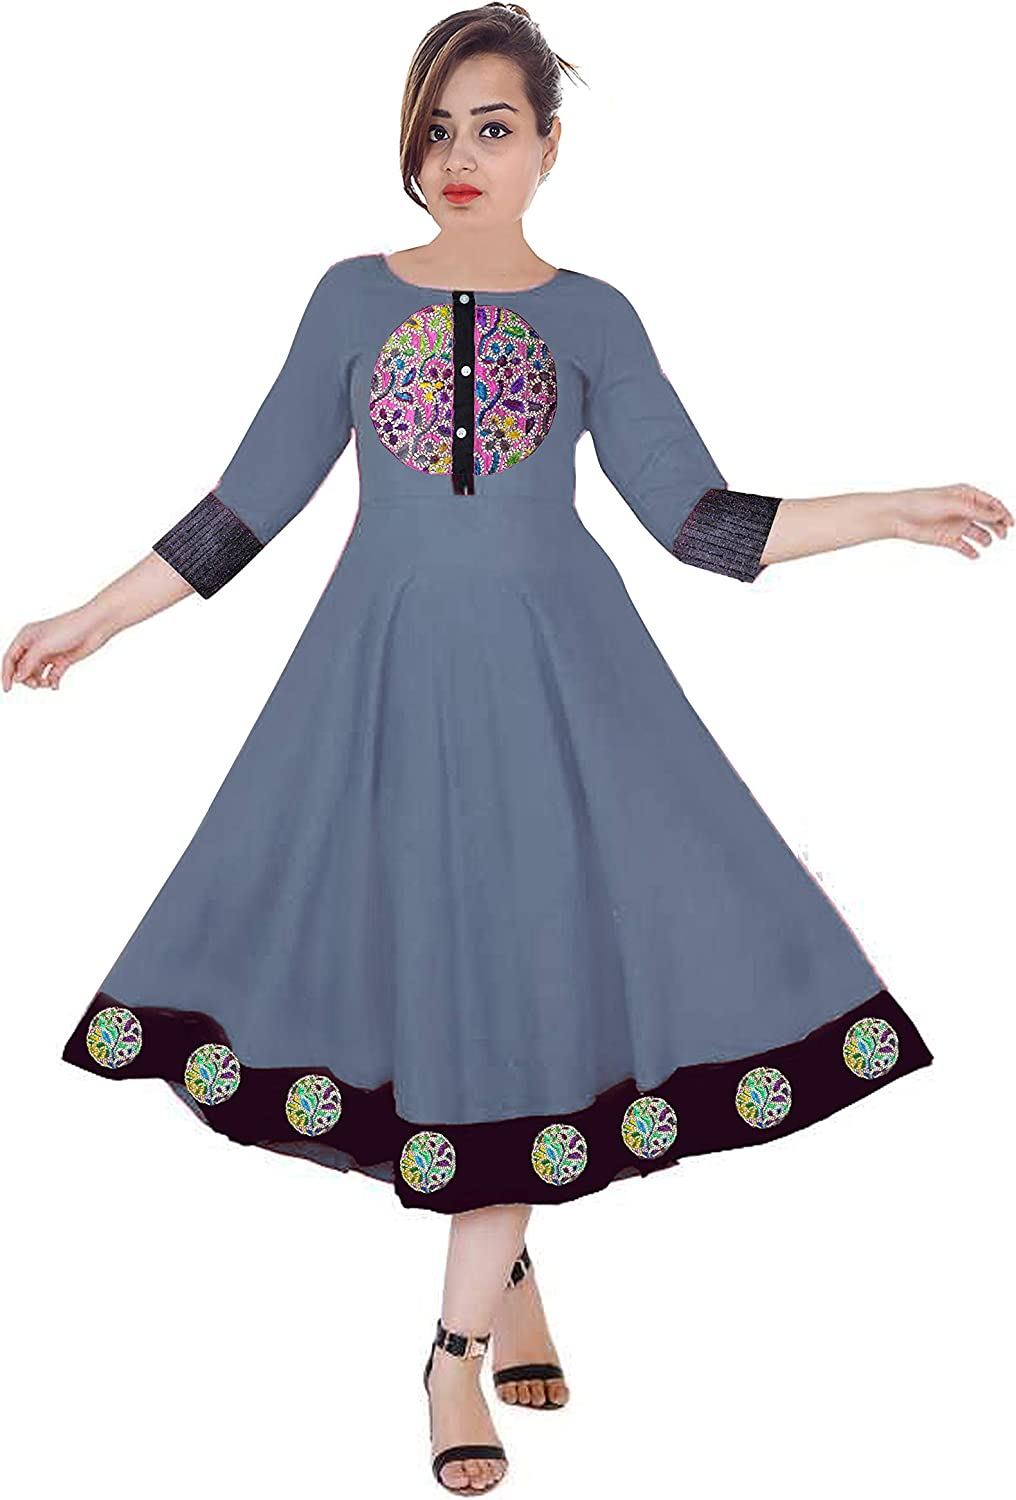 Lakkar Haveli Women Long Dress Embroidered Casual Long Tunic Frock Suit Ethnic Party Wear Maxi Dress Grey Color